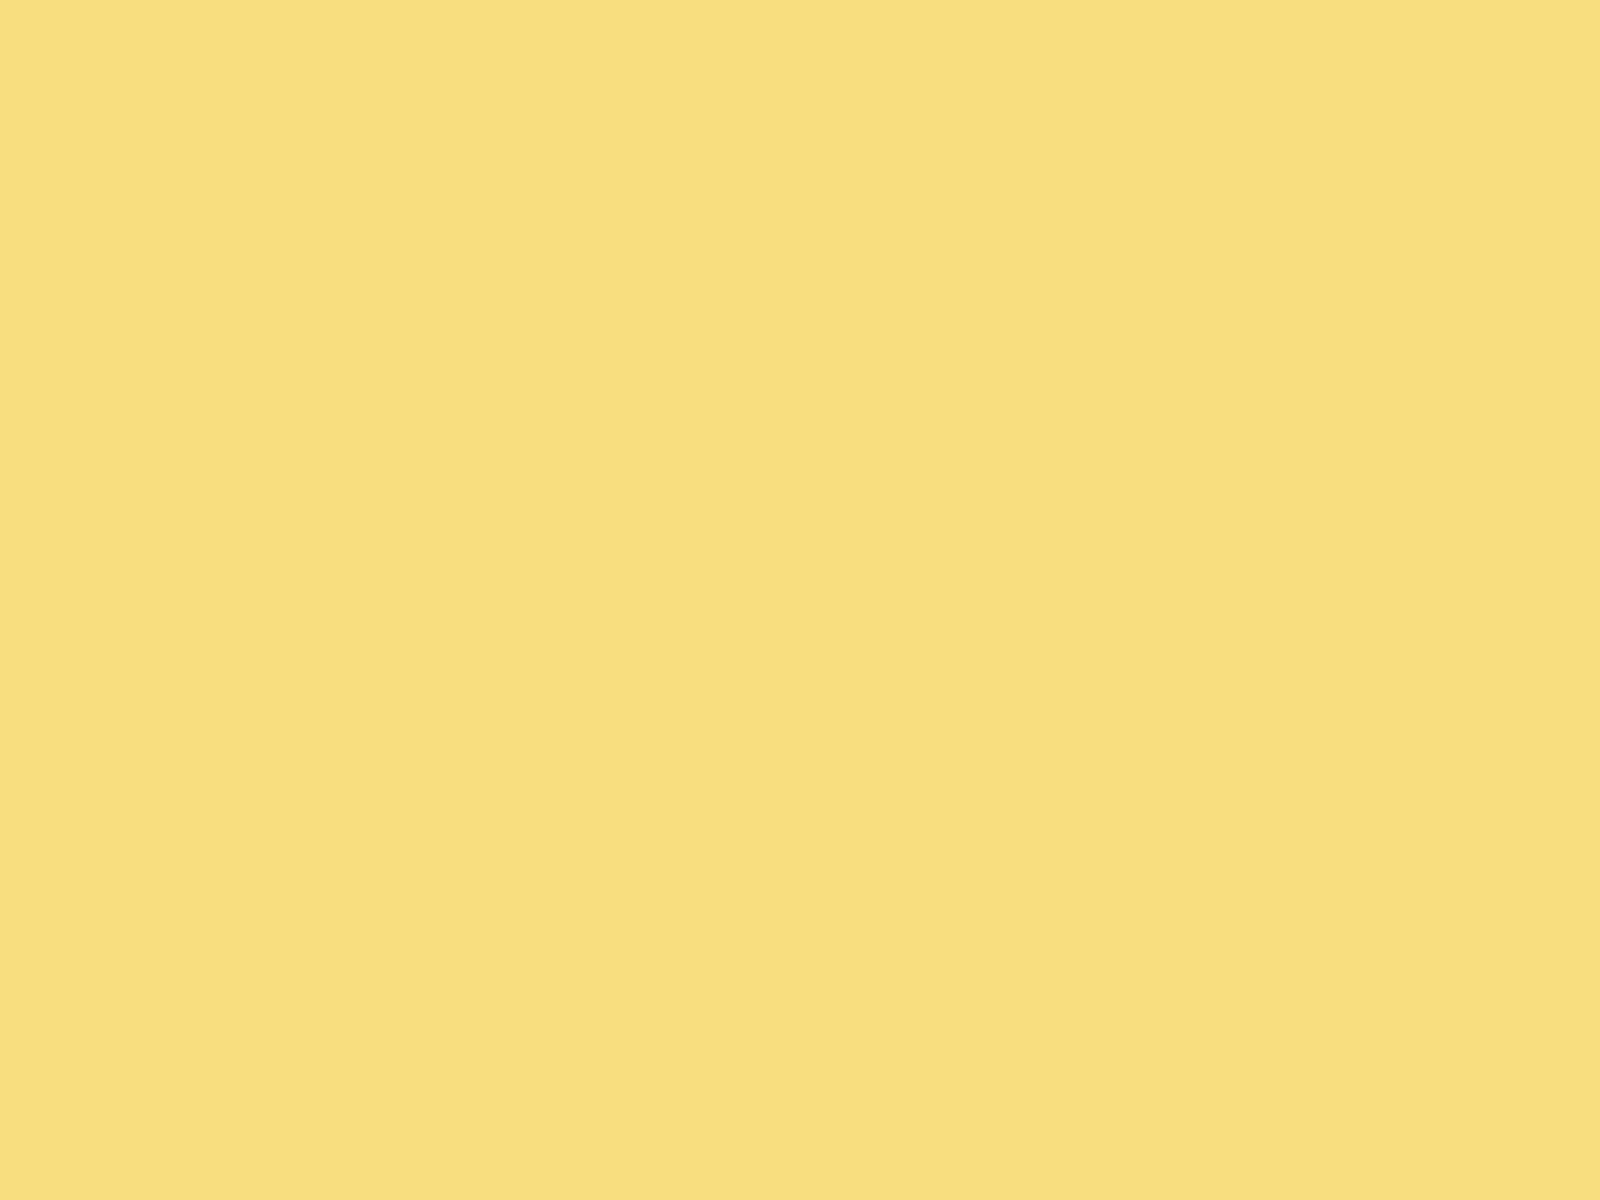 1600x1200 Mellow Yellow Solid Color Background